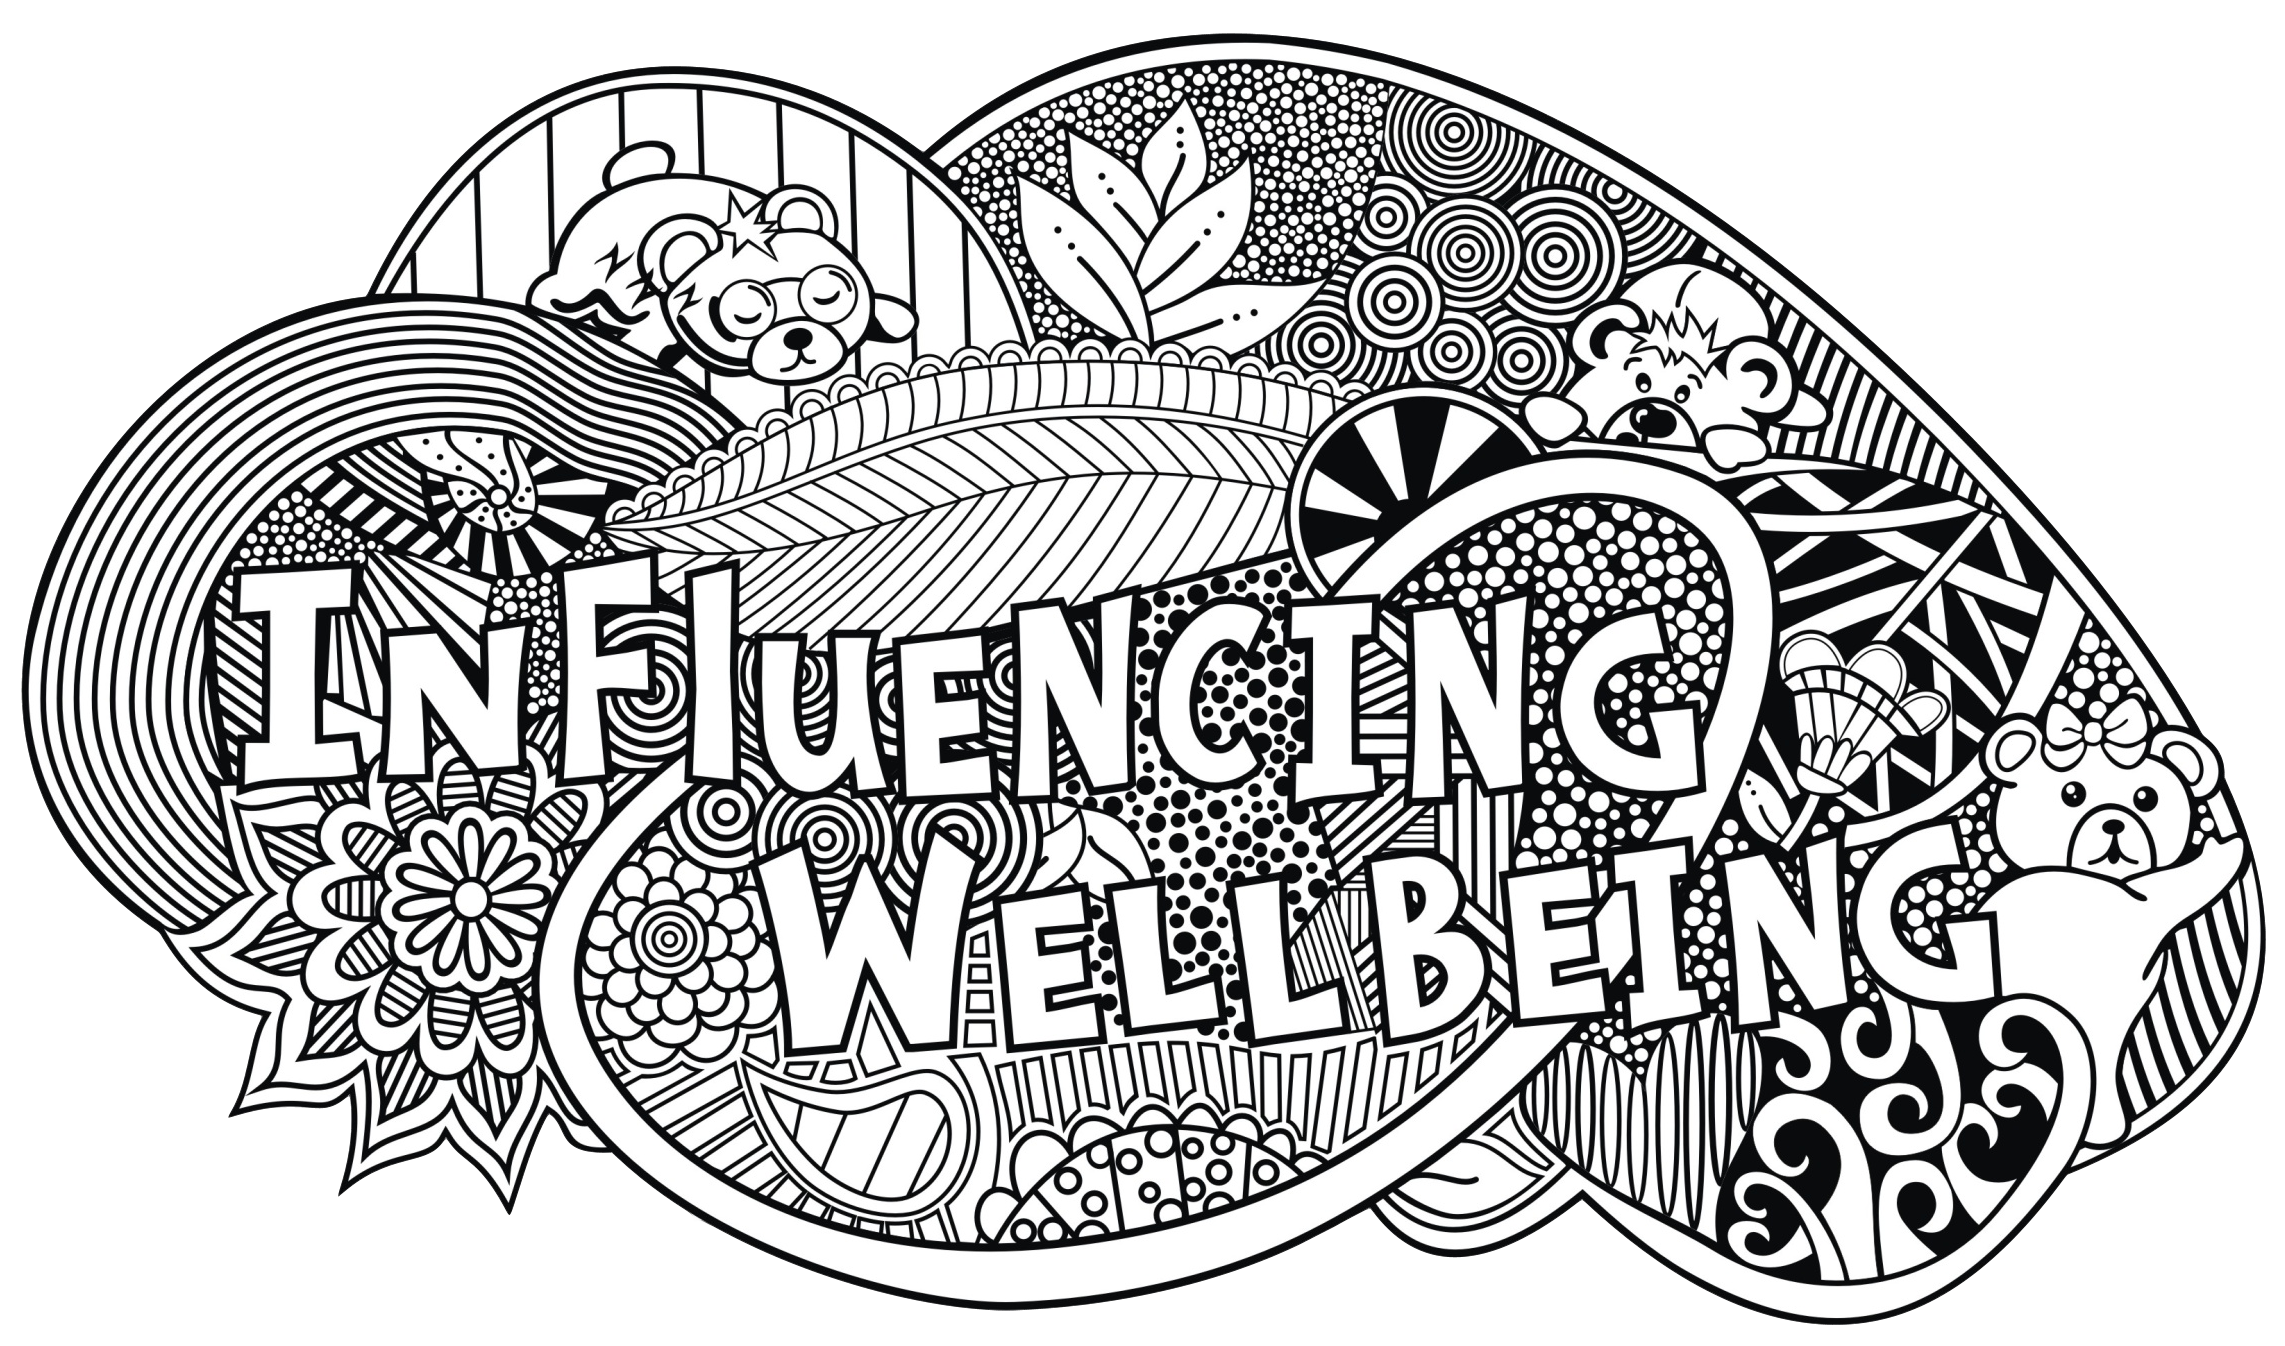 Influencing Wellbeing